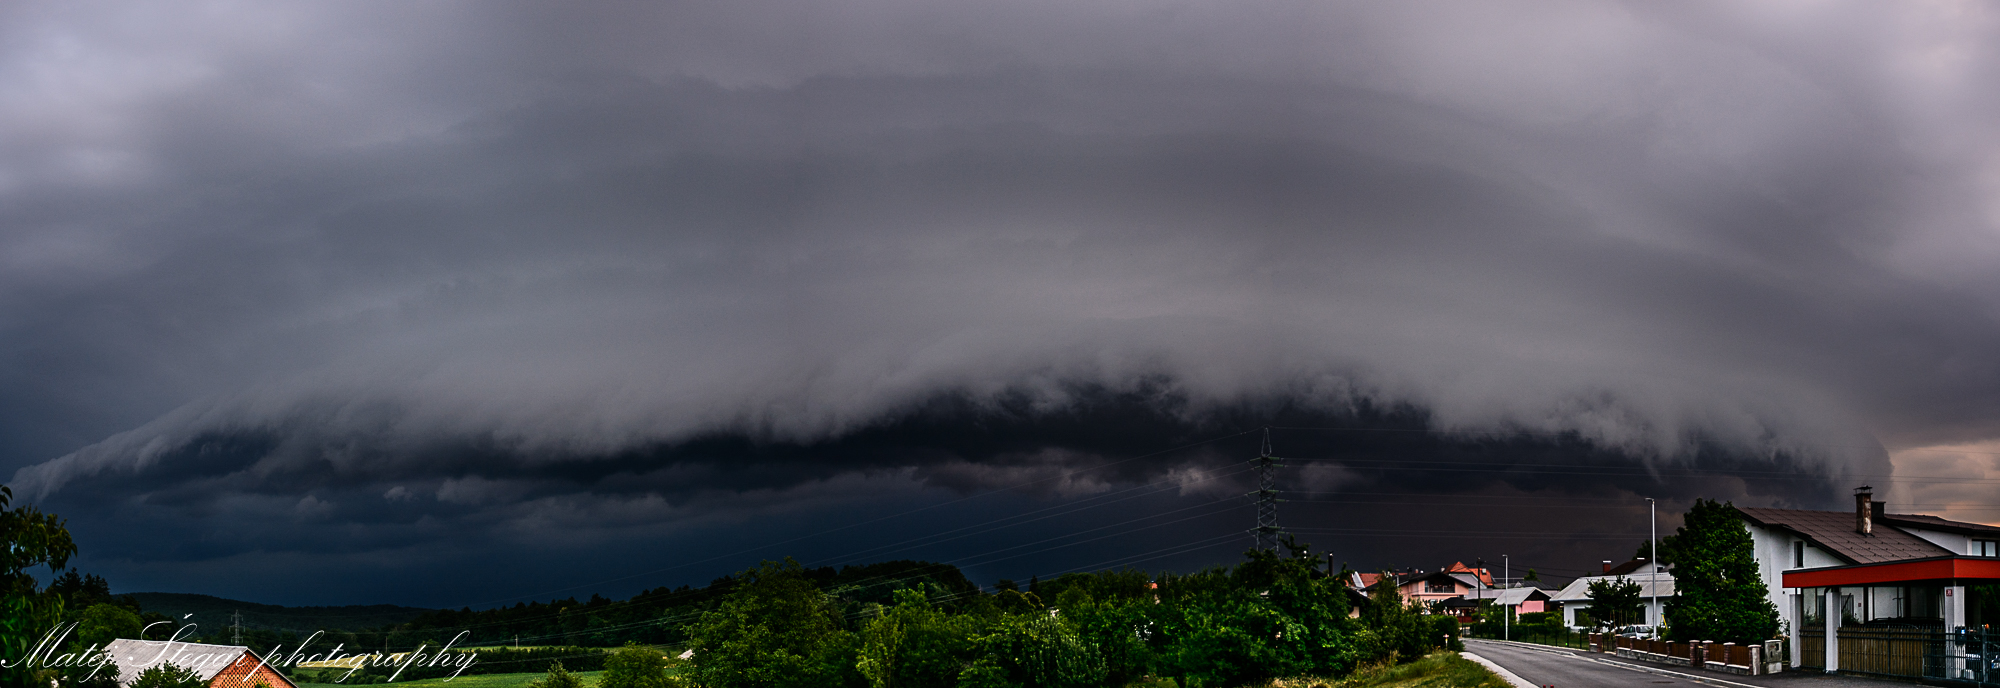 shelf cloud nad dravskim poljem 17.6.2019 matej stegar 5